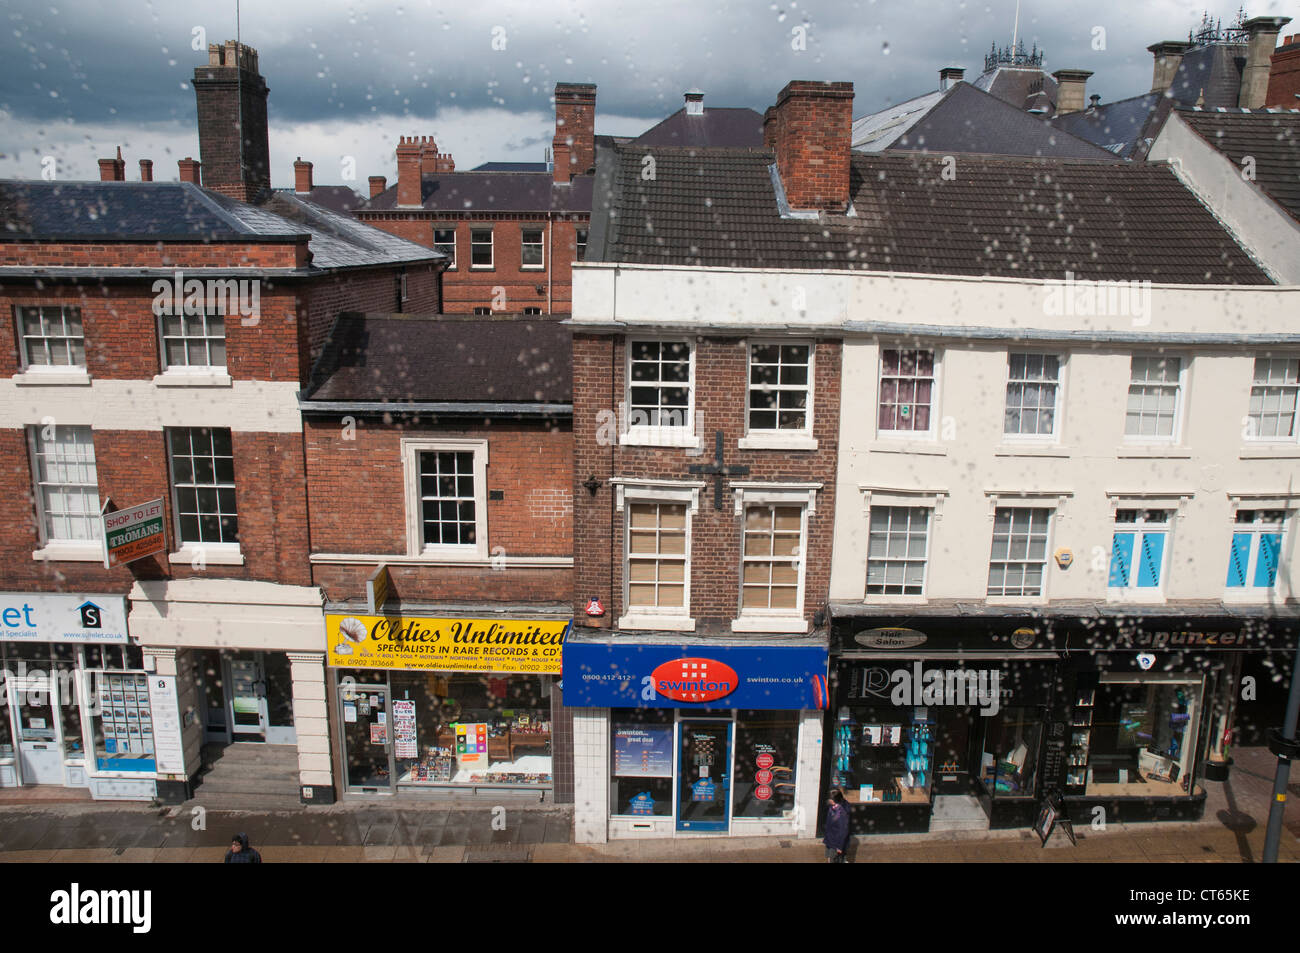 Shopfronts seen through a rain-streaked upstairs window in Wolverhampton, West Midlands - Stock Image